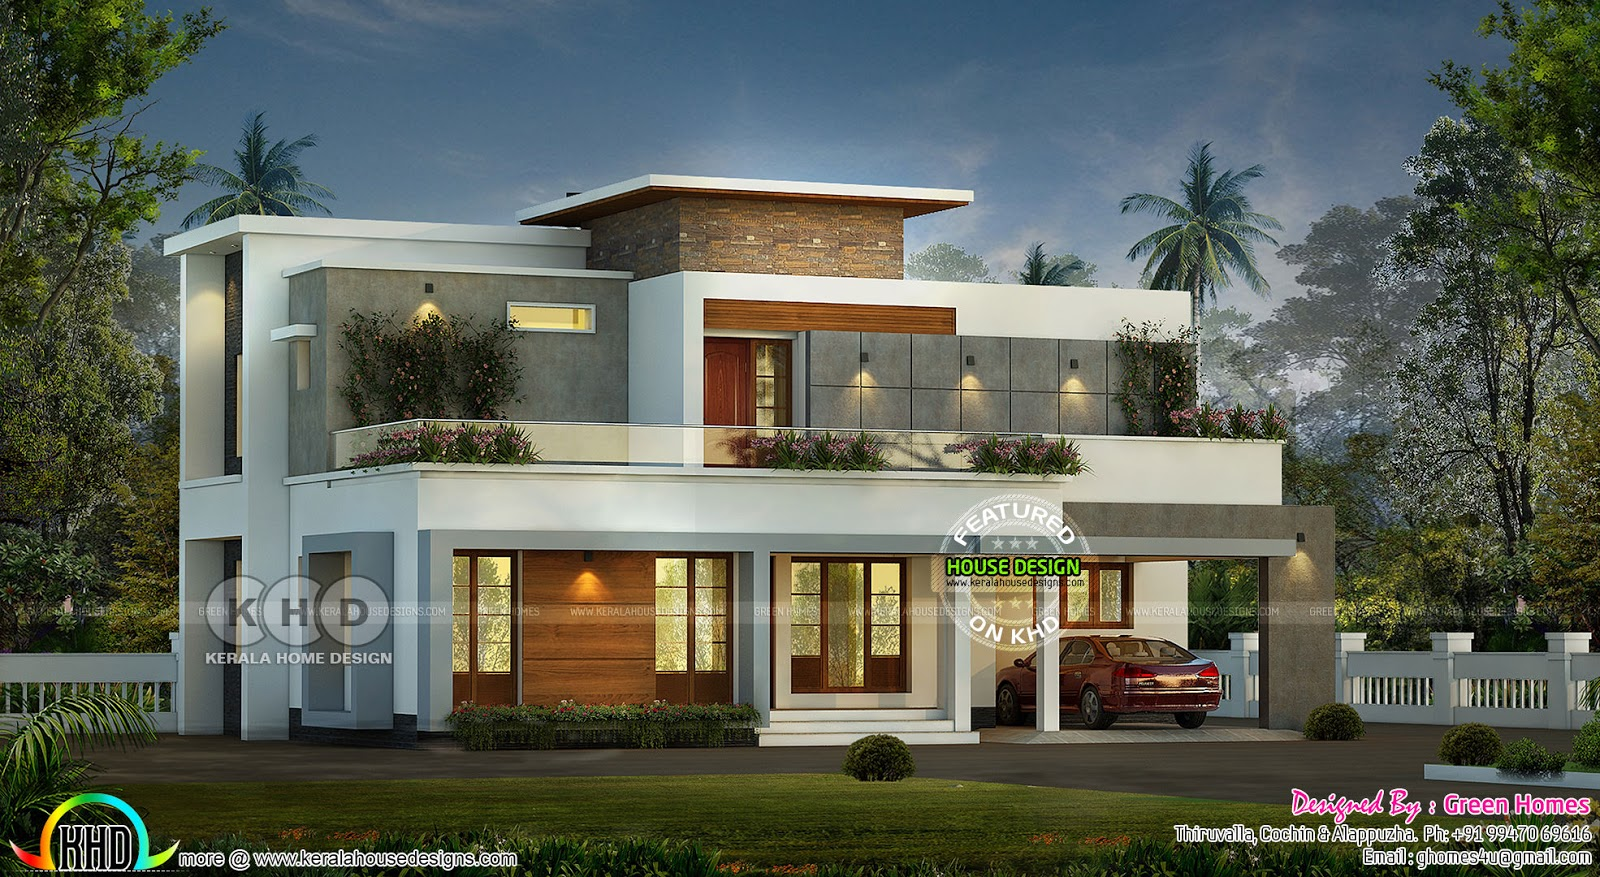 1800 square feet 3 bedroom flat roof contemporary kerala for 1800 square foot house